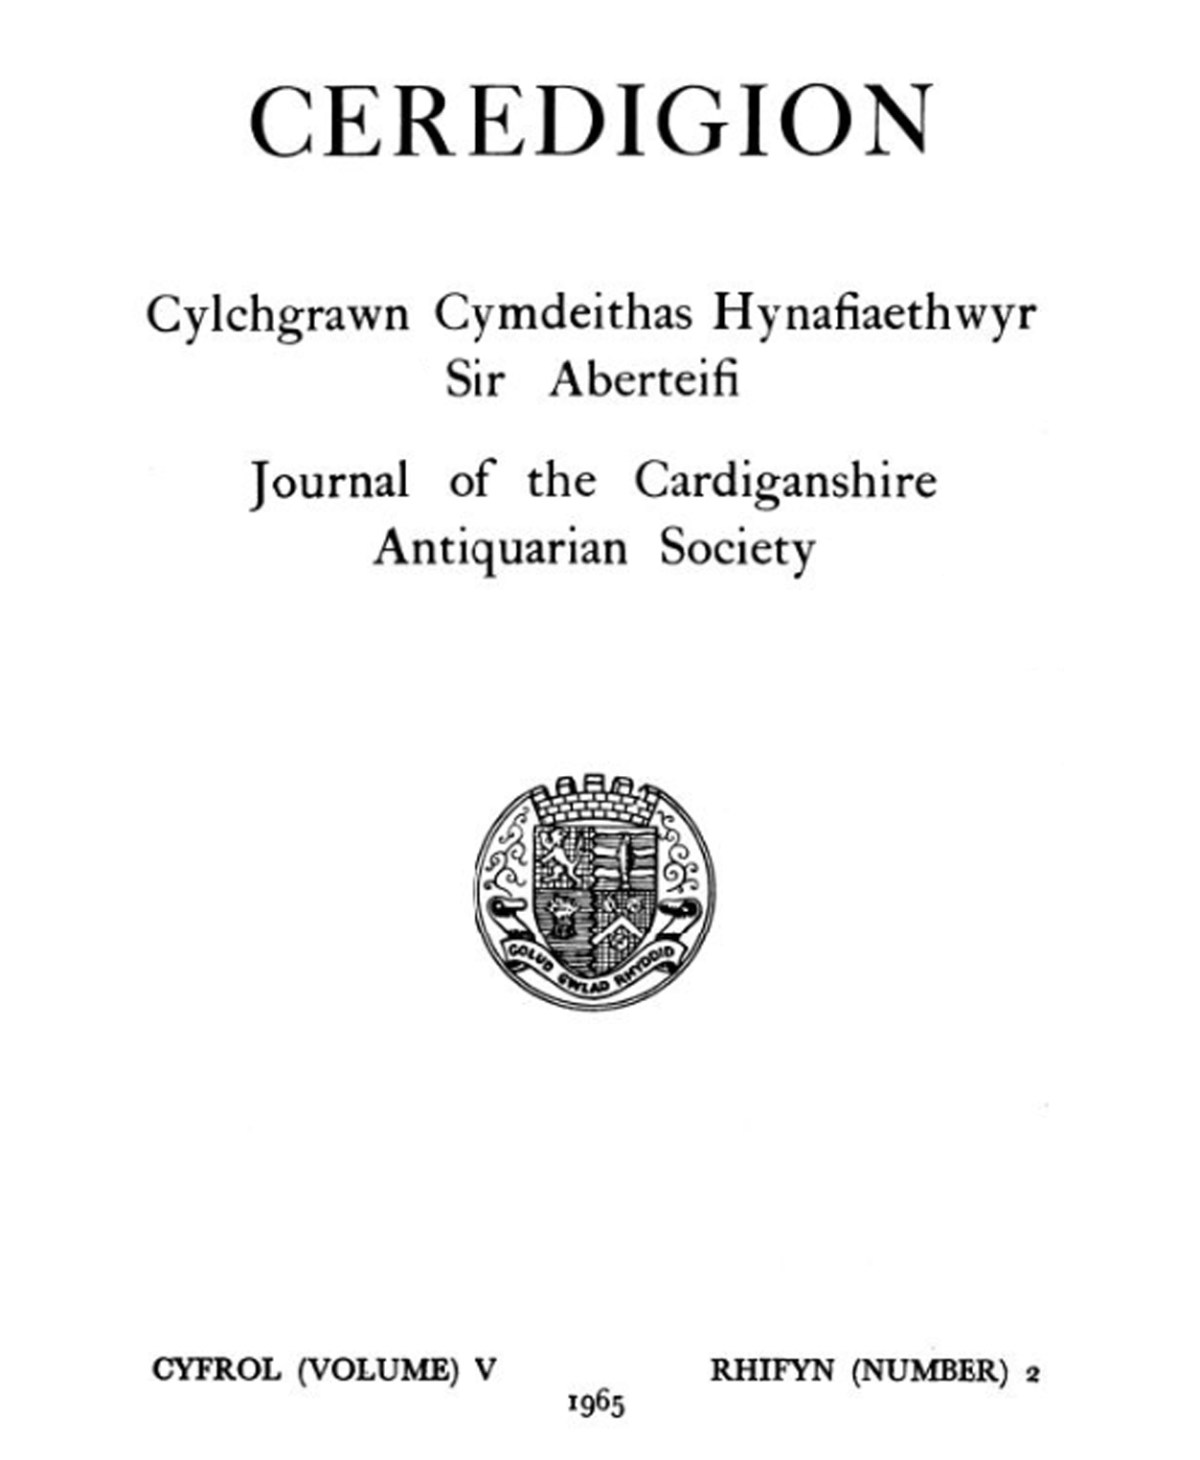 Ceredigion – Journal of the Cardiganshire Antiquarian Society, 1965 Vol V No 2